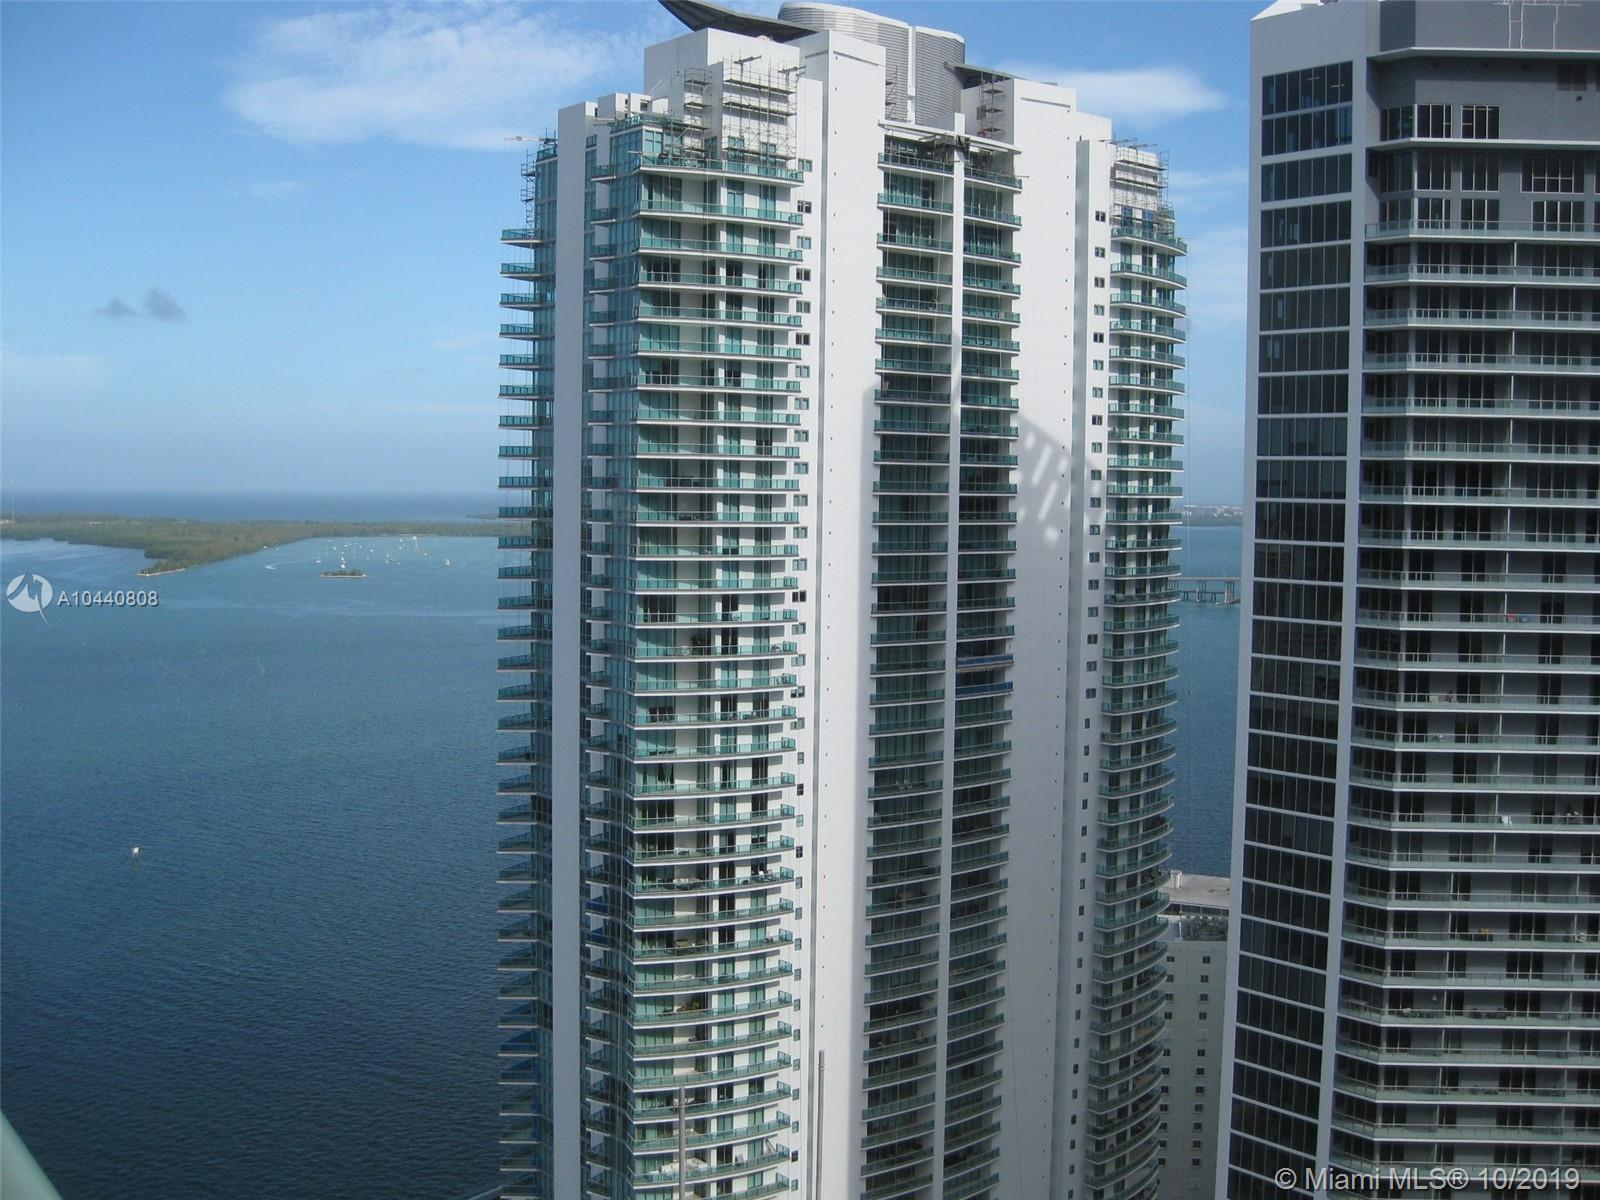 Club at Brickell #4217 - 1200 BRICKELL BAY DR #4217, Miami, FL 33131